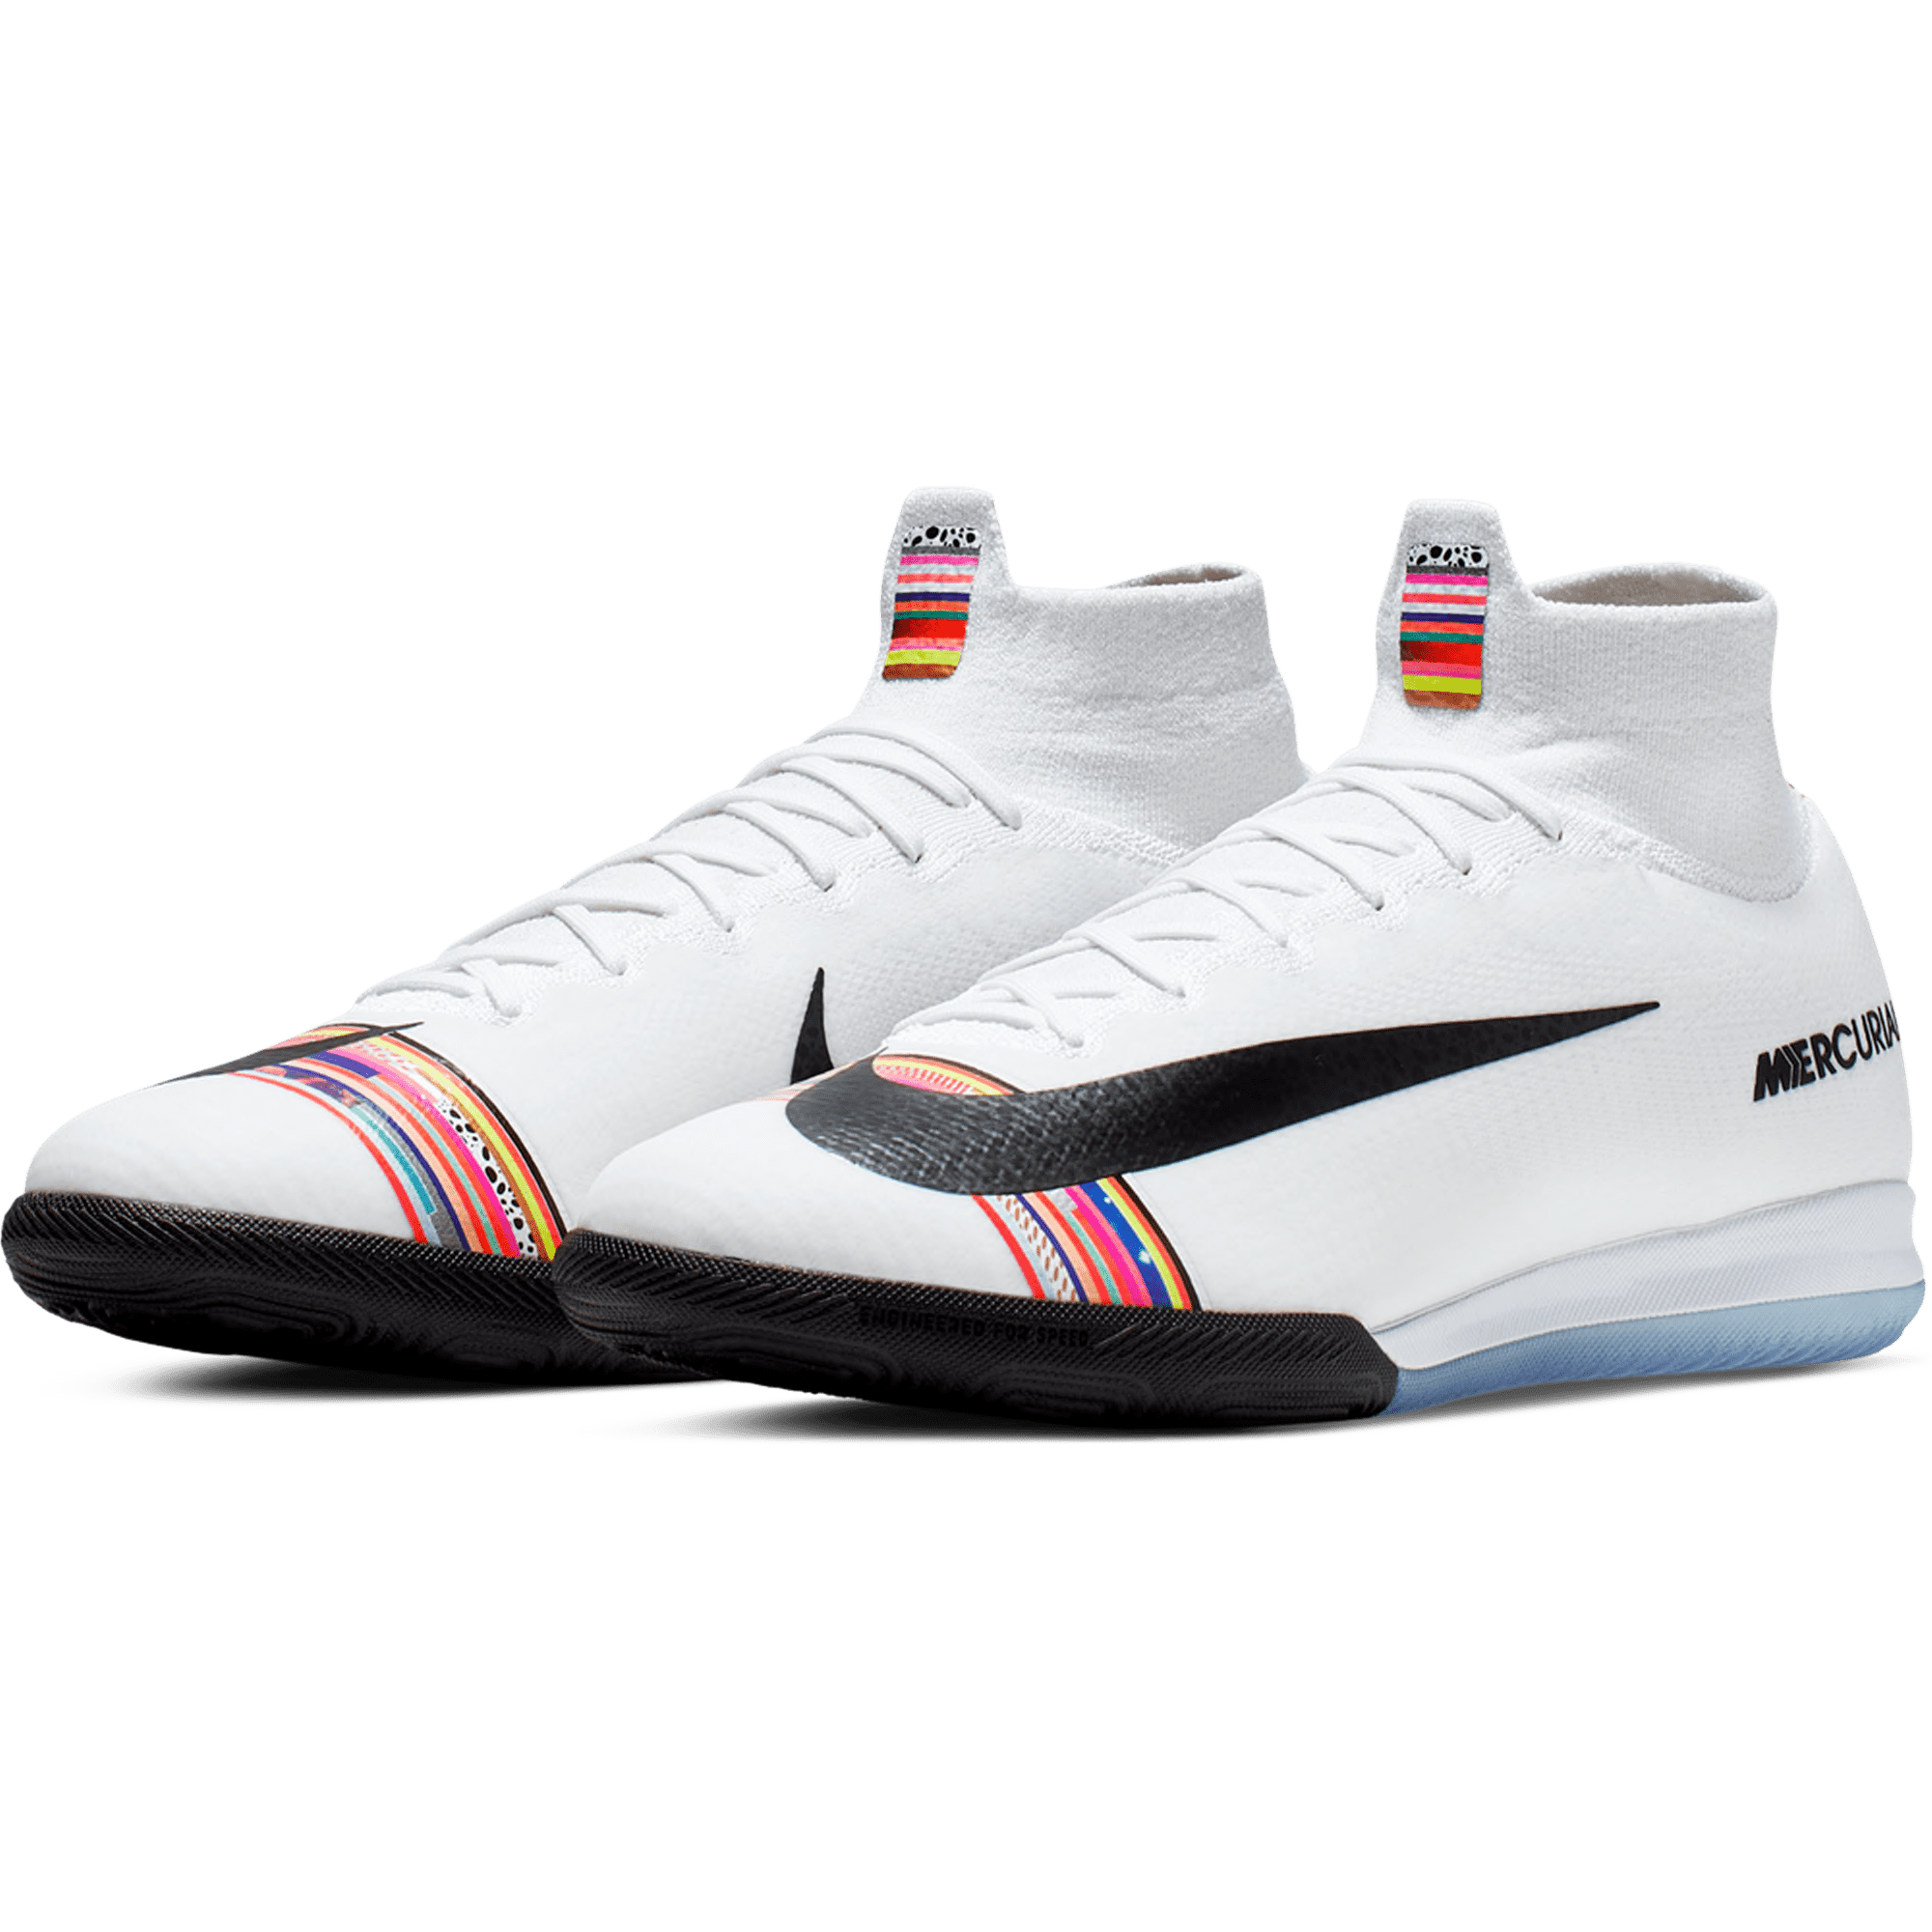 info for a72ab fa941 Nike Mercurial Superfly X VI Elite SE IC Indoor Soccer Shoe – Platinum    Black   White